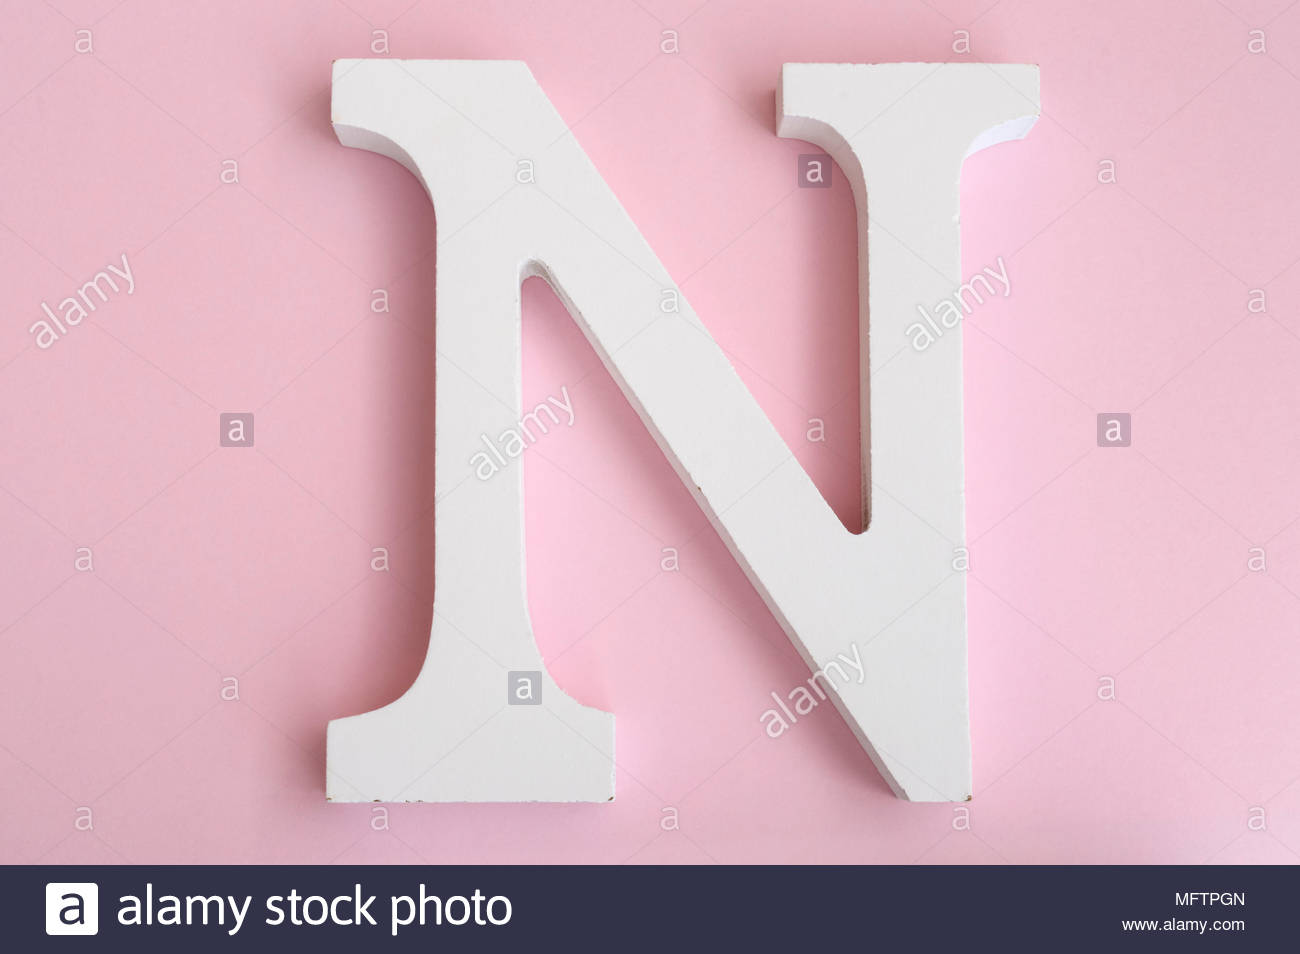 N Typography Font Letter Type Stock Photos & N Typography Font ...